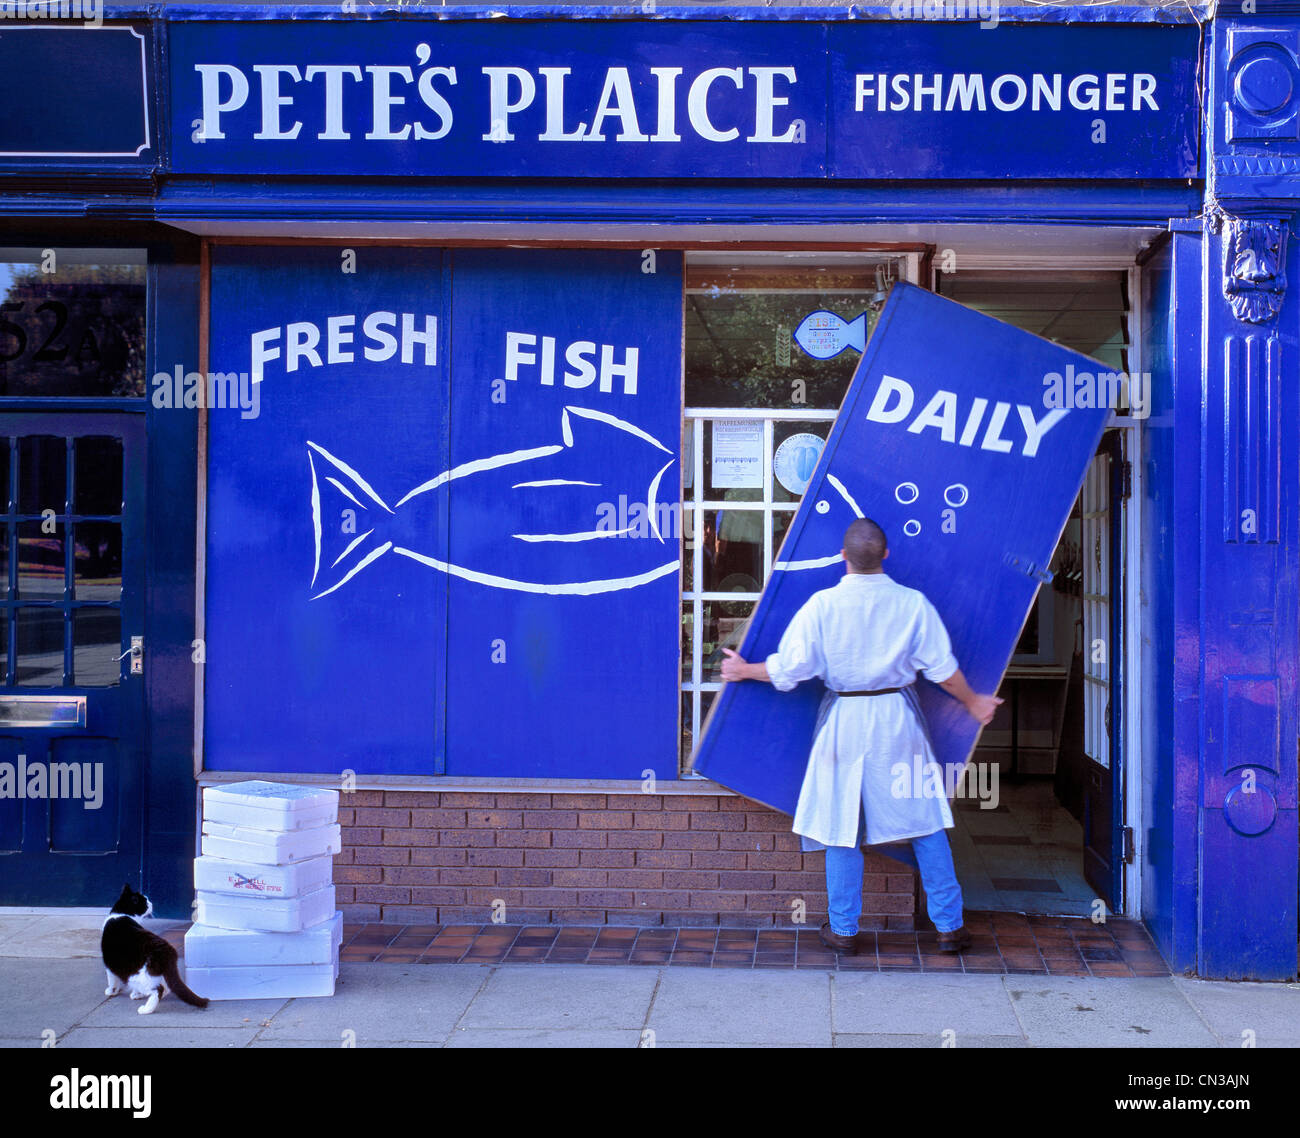 Fishmonger putting up shop front signs - Stock Image